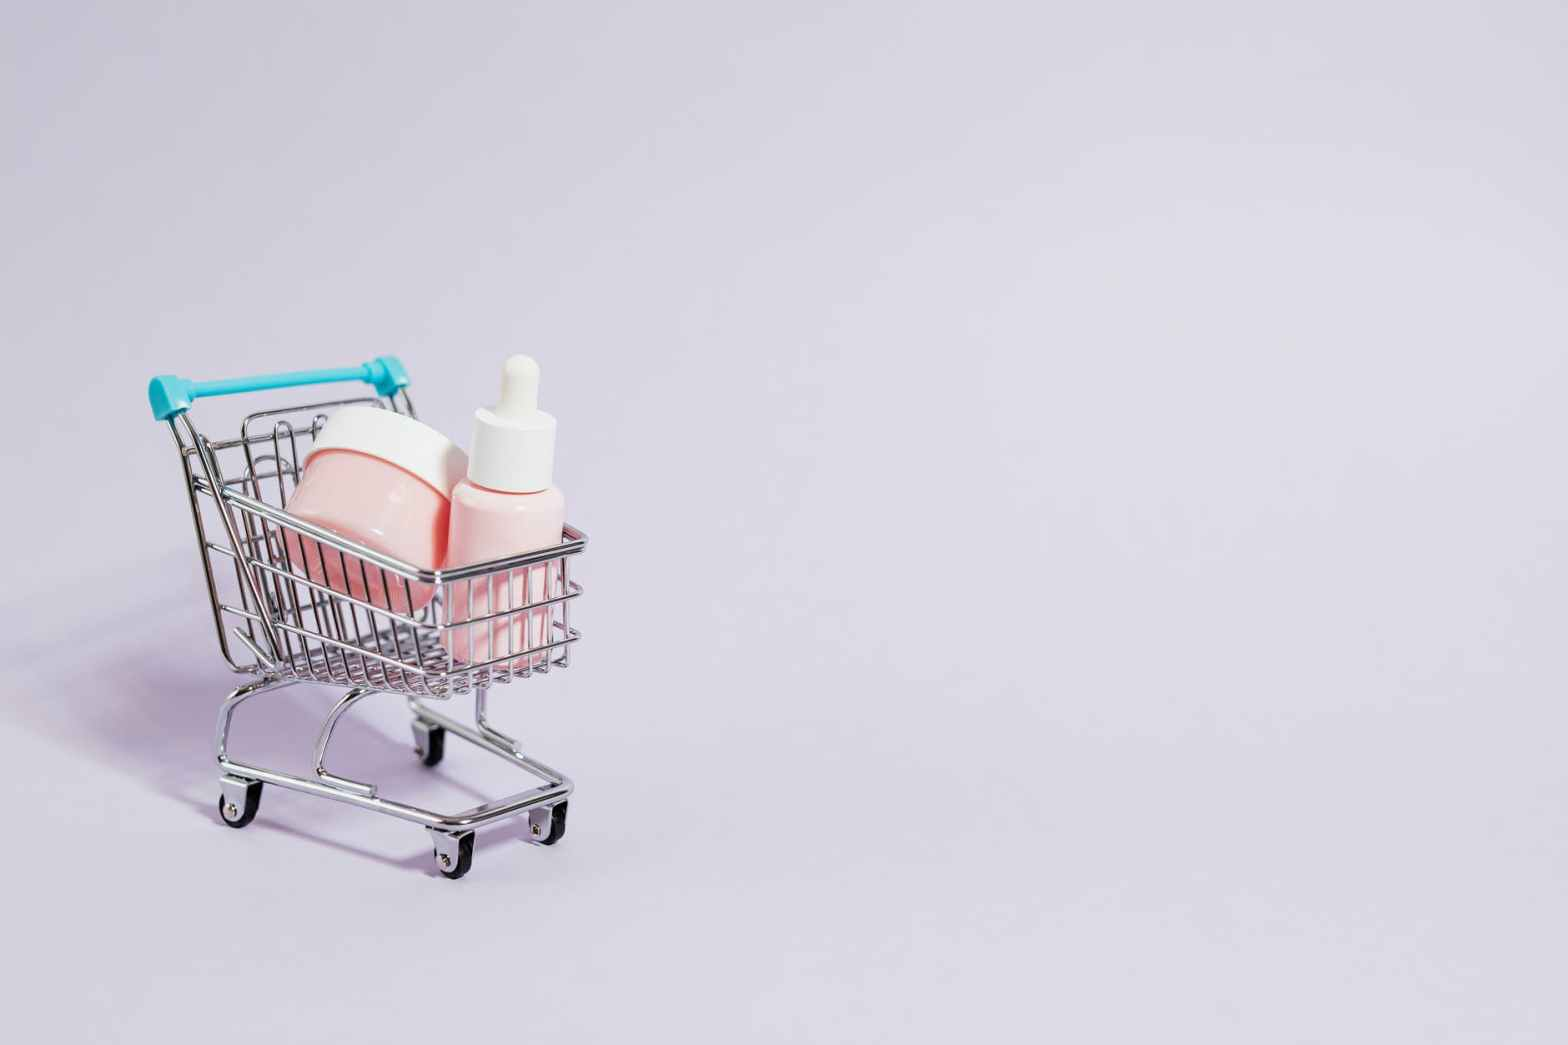 cosmetic products in a cart